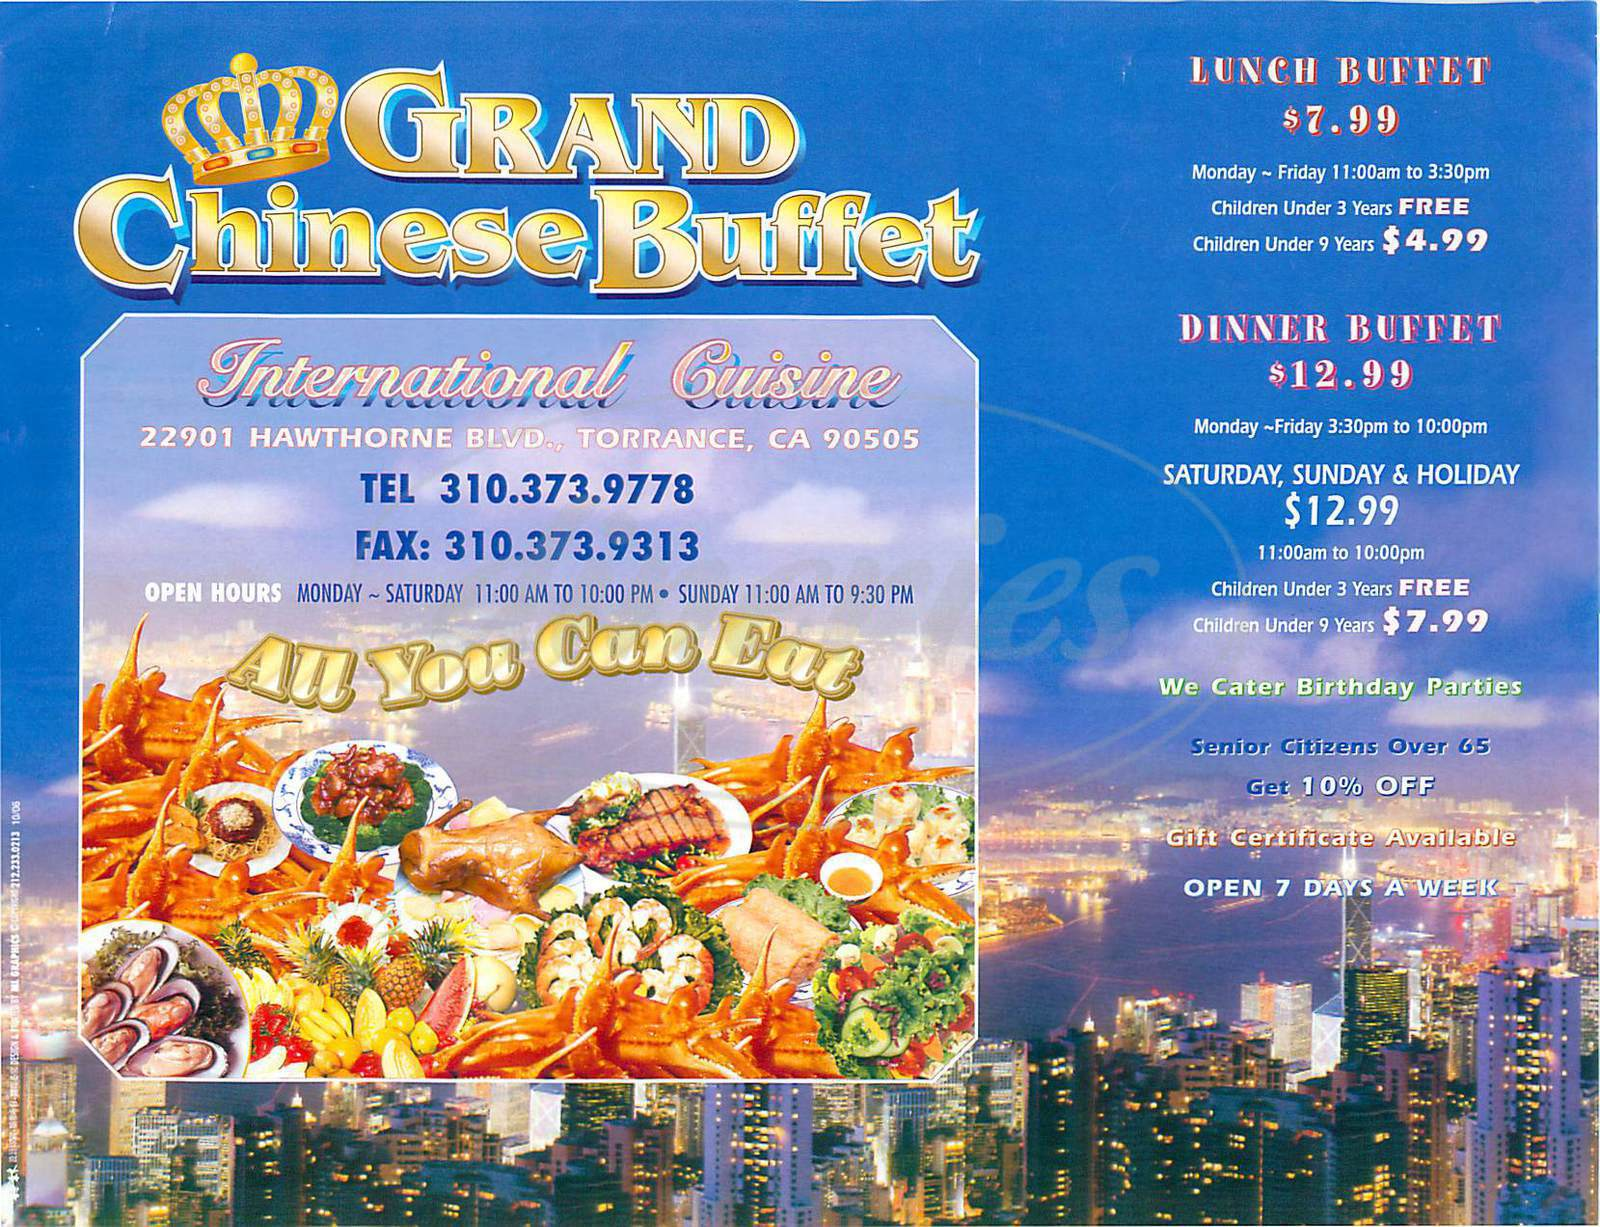 menu for Grand Chinese Buffet